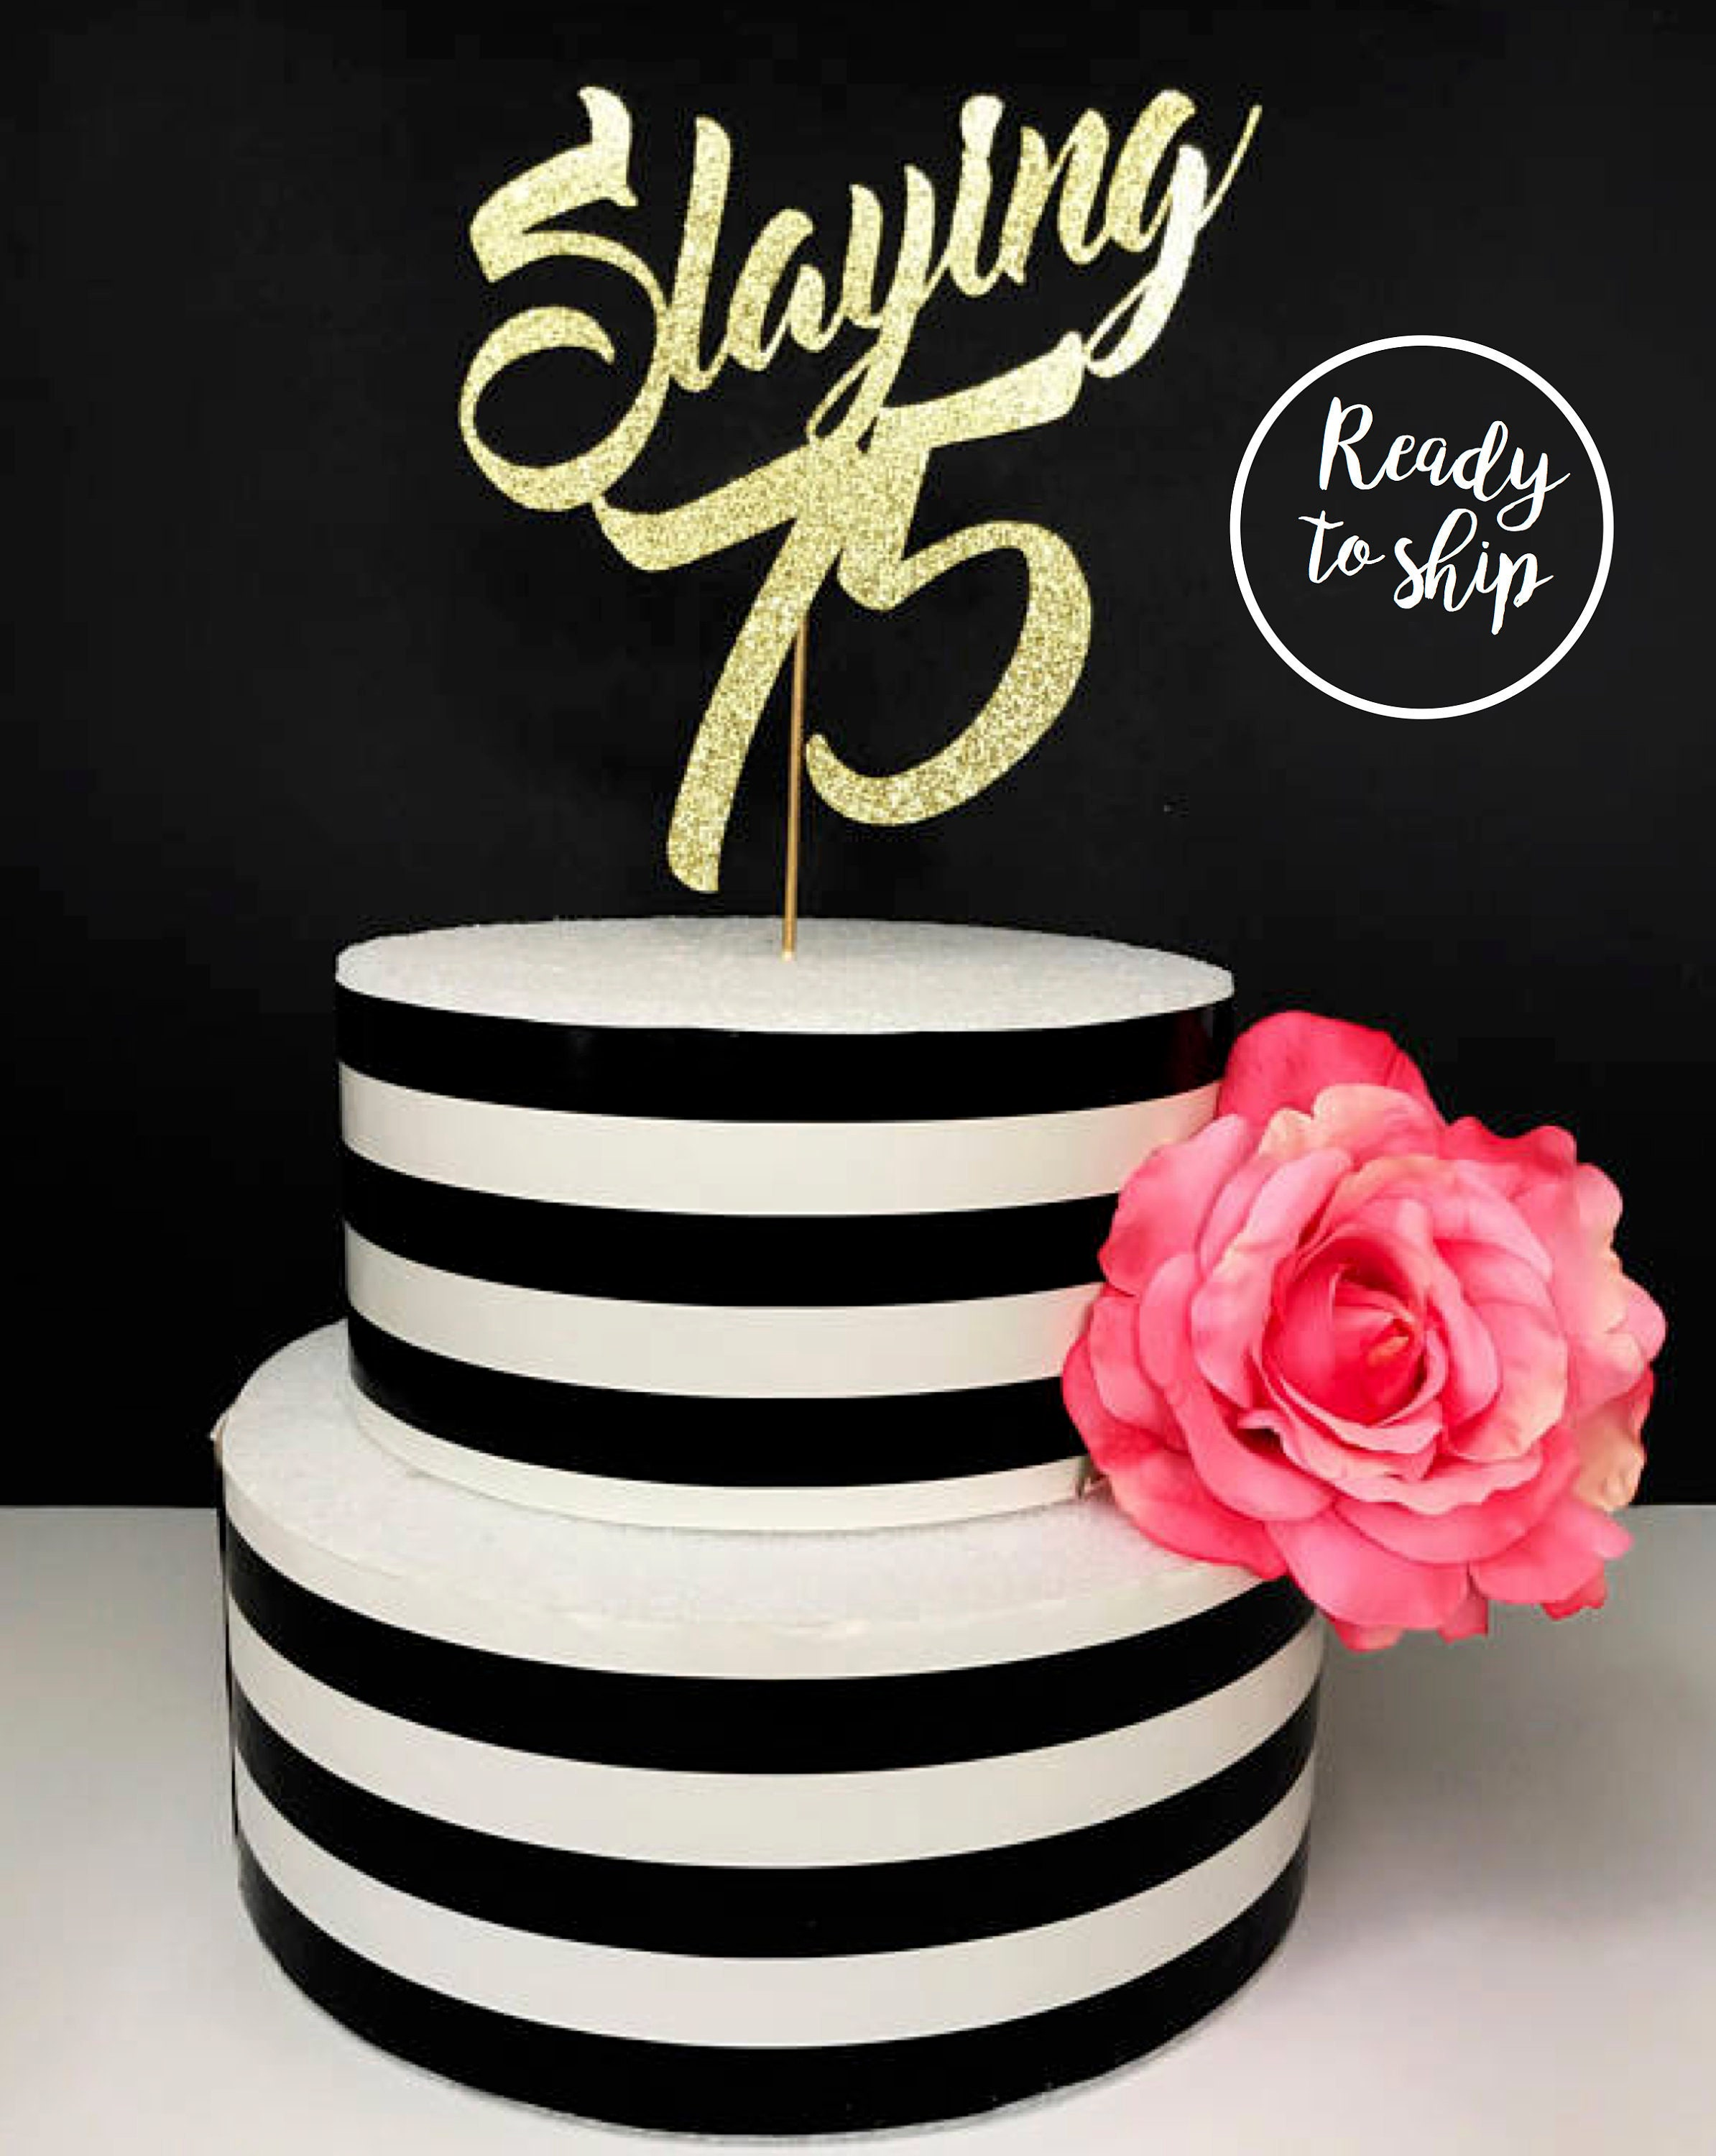 Any Age 75th Birthday Cake Topper Slaying 75